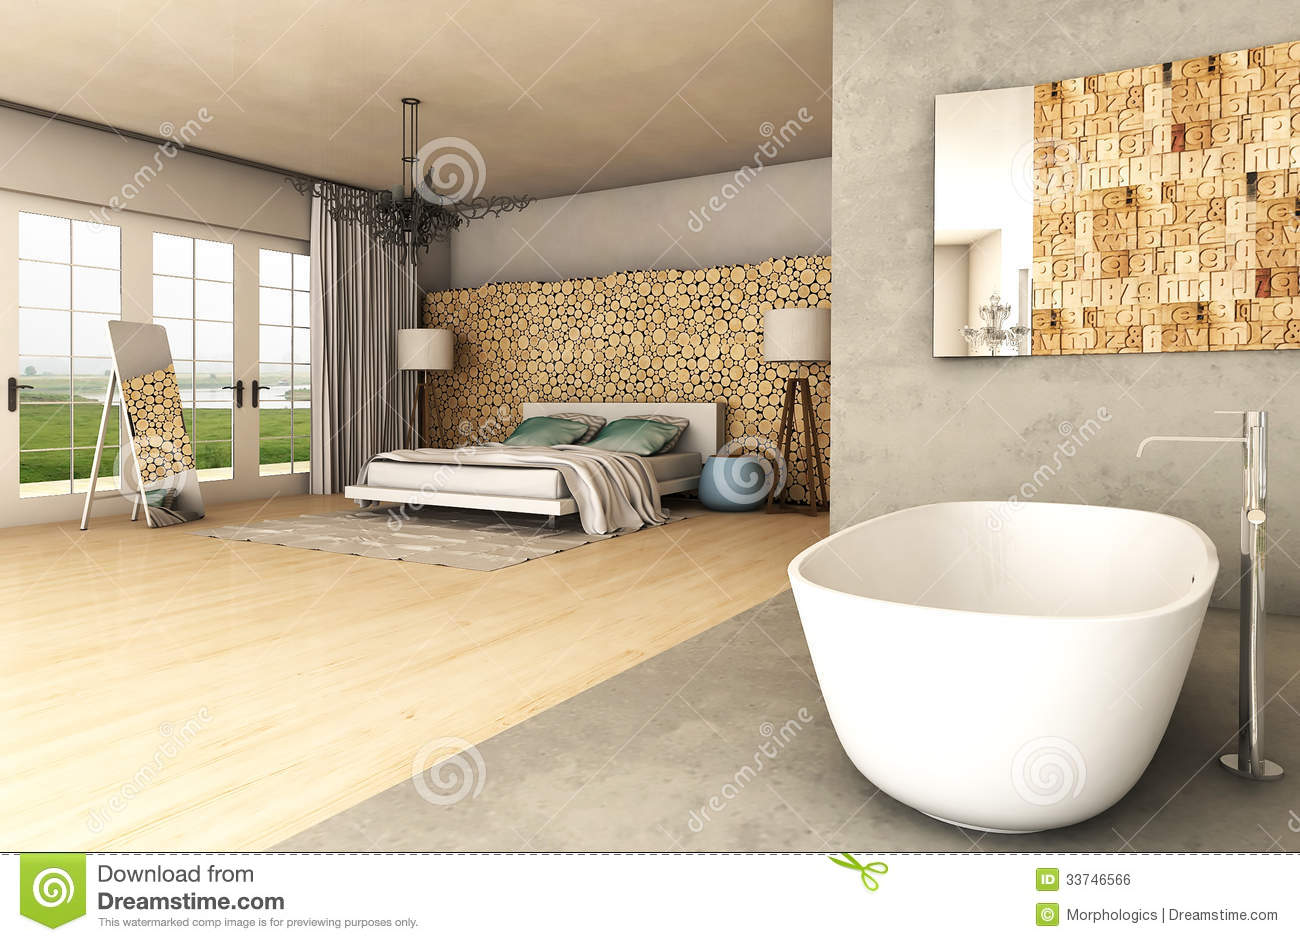 design rendering of modern bedroom with wooden features and bathtub